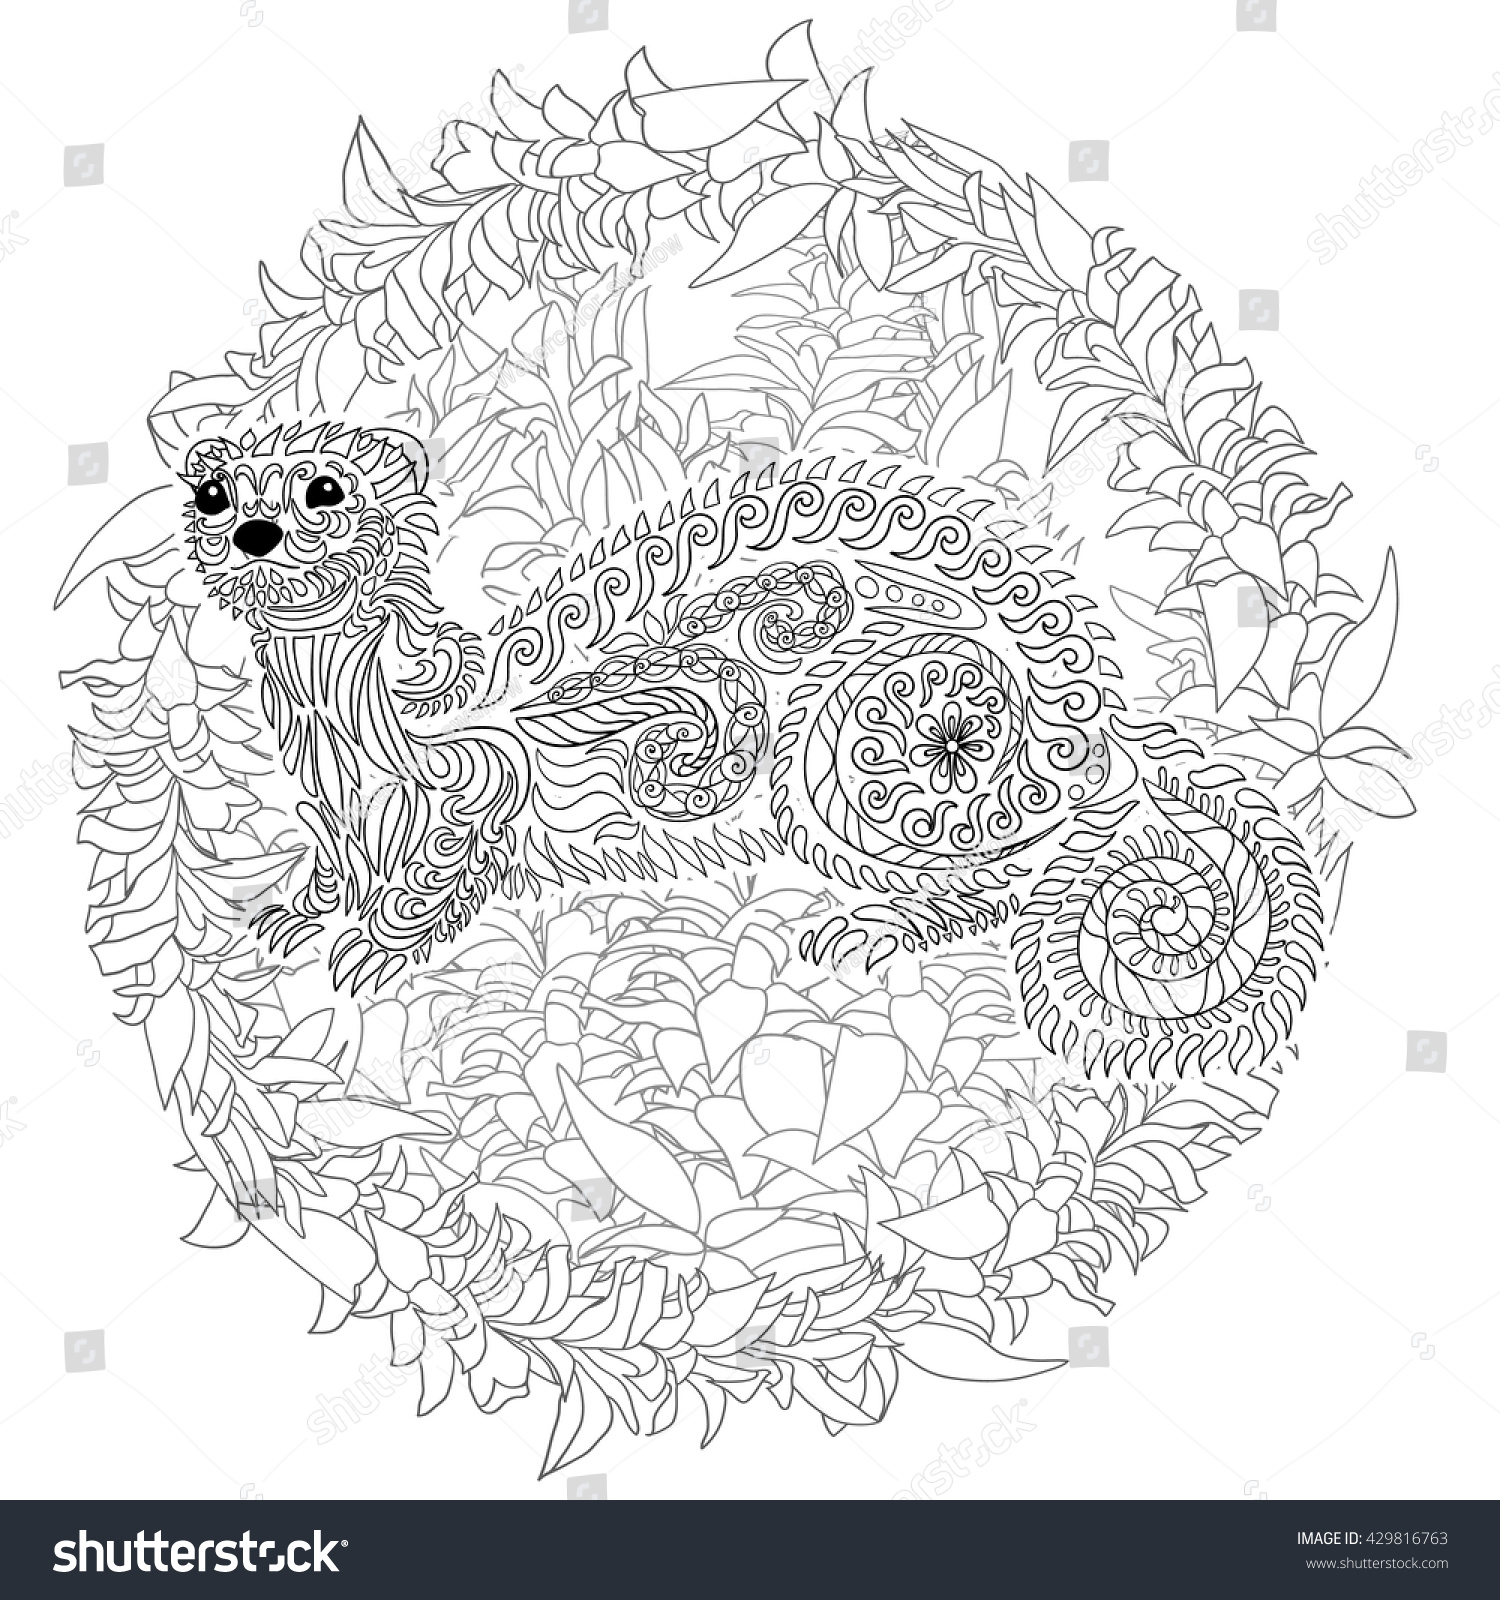 Uncategorized Ferret Coloring Pages hand drawn ferret zen tangle style stock vector 429816763 in with high details coloring page for anti